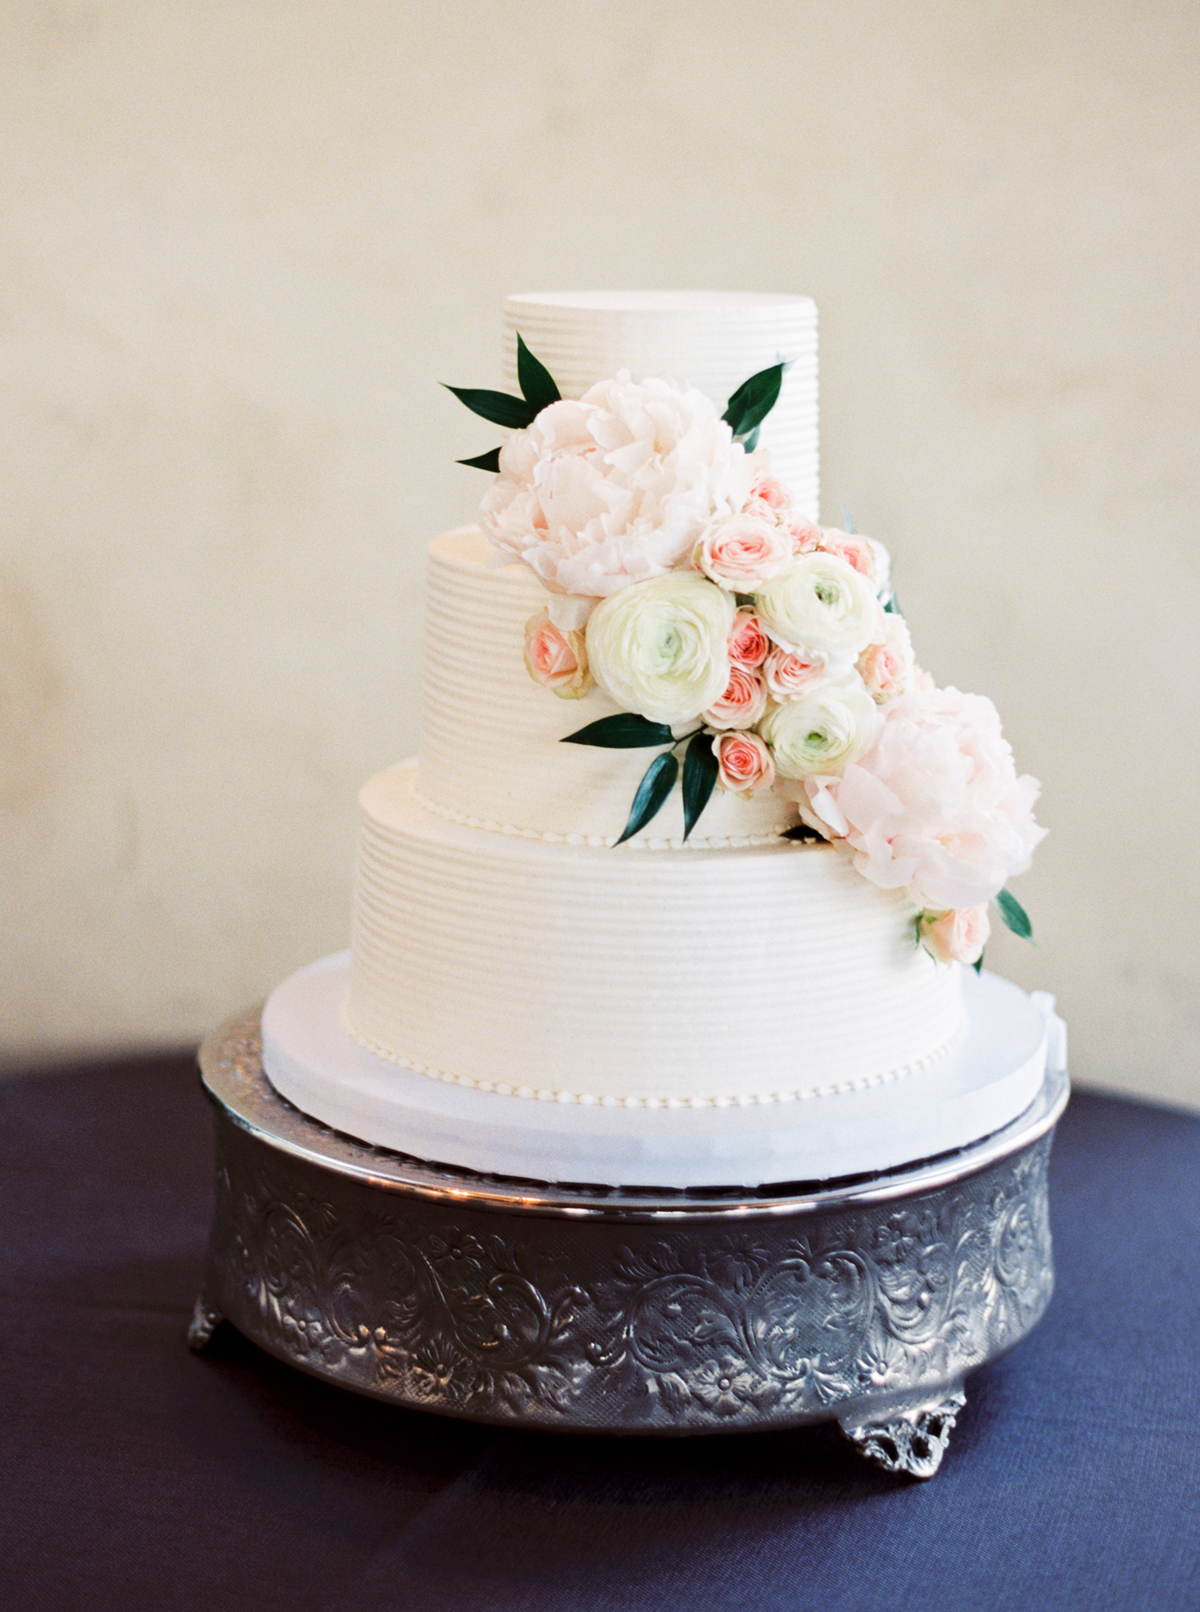 Wedding Cake with Cascading Roses - Elizabeth Anne Designs: The ...